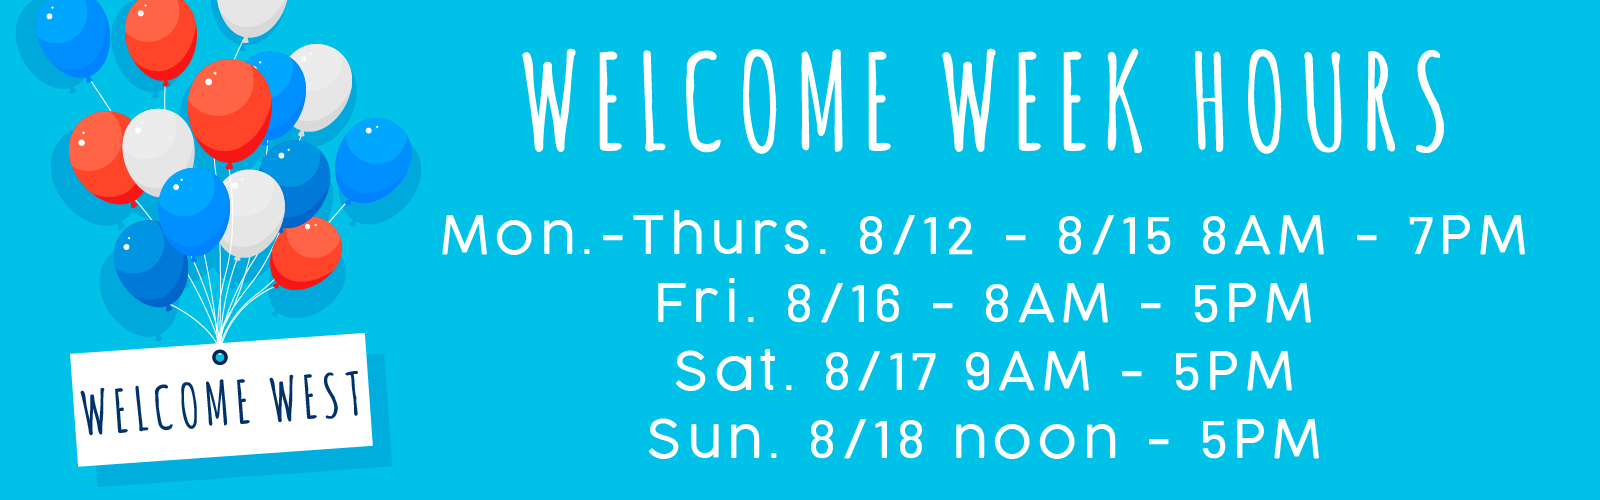 Welcome Week Hours | 8/12 - 8/15 8am - 7pm